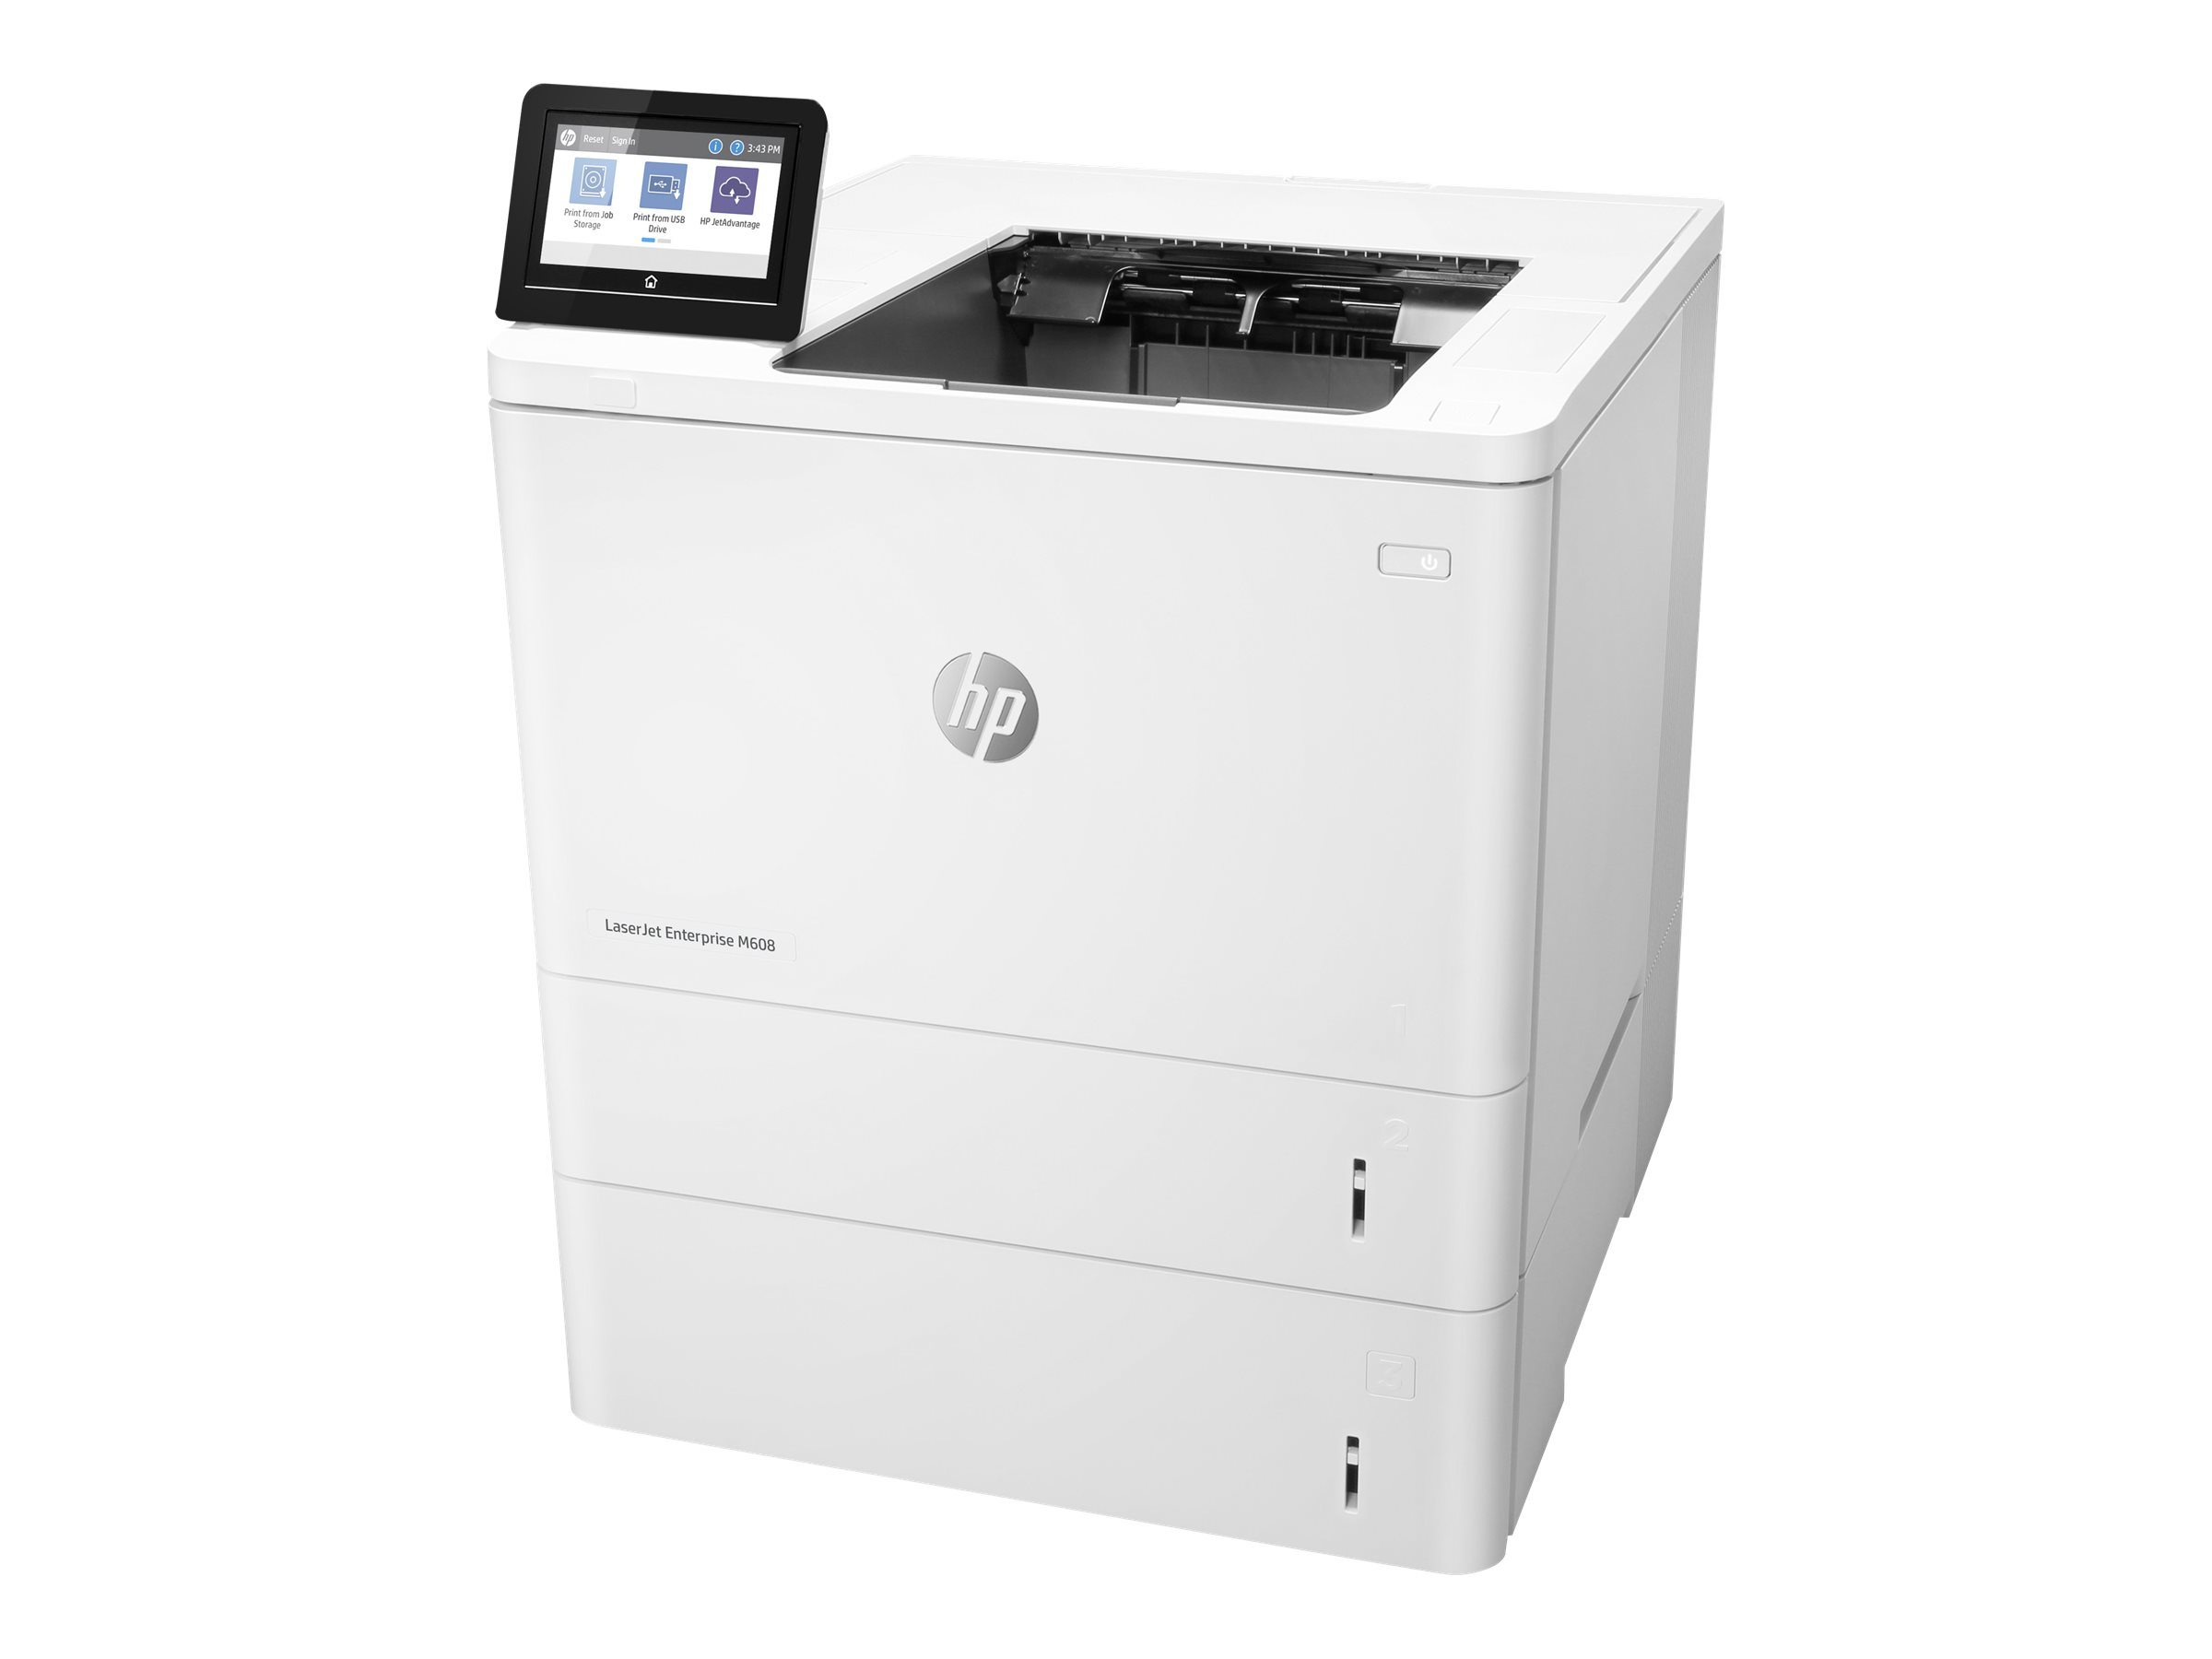 HP LaserJet Enterprise M608x - printer - B/W - laser